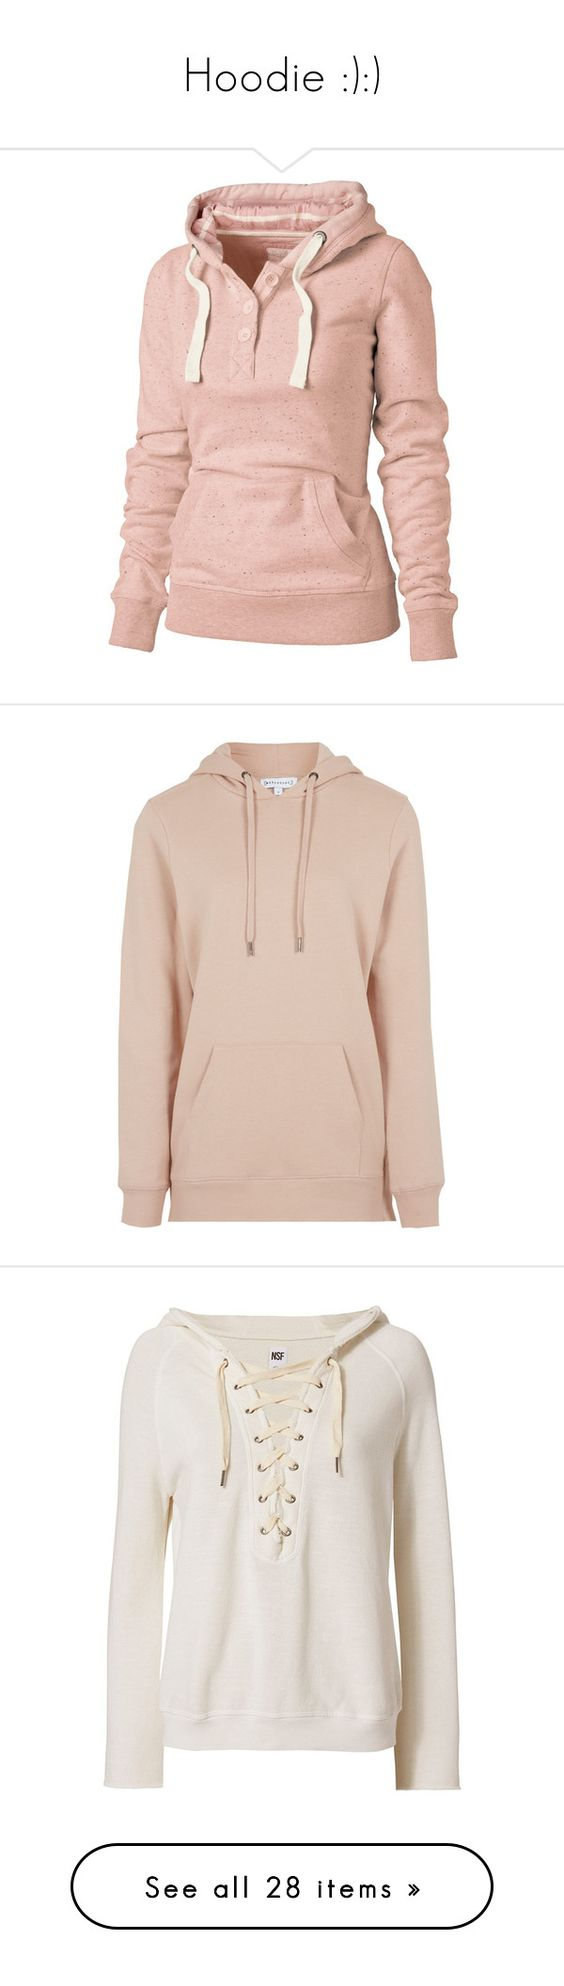 """""""Hoodie :):)"""" by somethinglikelove ❤ liked on Polyvore featuring tops, hoodies, jackets, sweaters, sweatshirts, women, drawstring hooded pullover, cotton hoodies, hooded pullover and drawstring hoodie"""